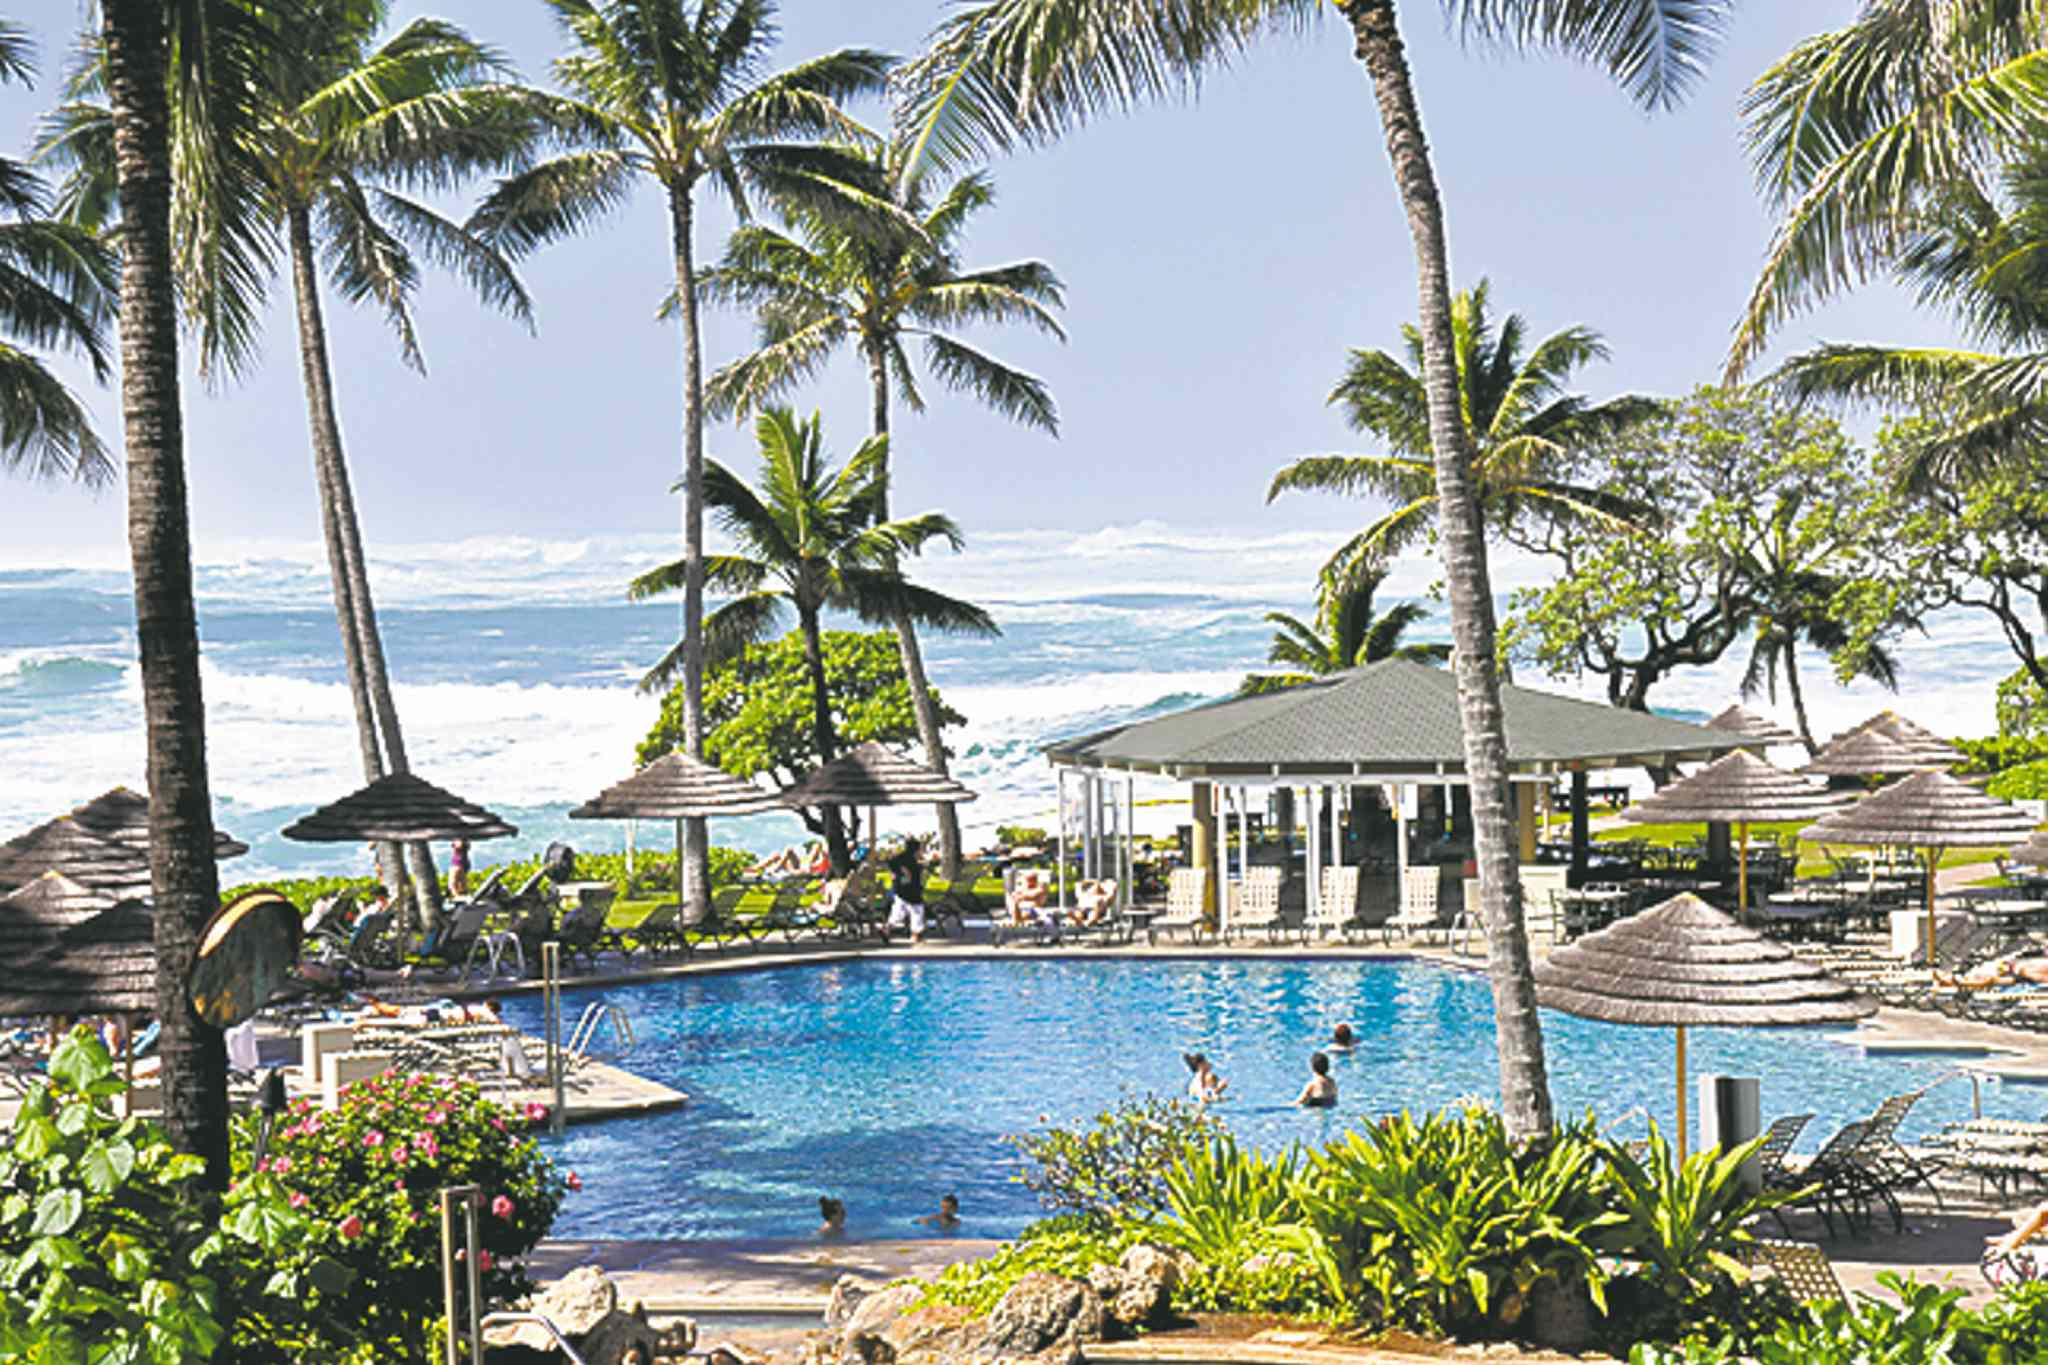 You can watch the North Shore waves from the comfort of the pool at Turtle Bay.